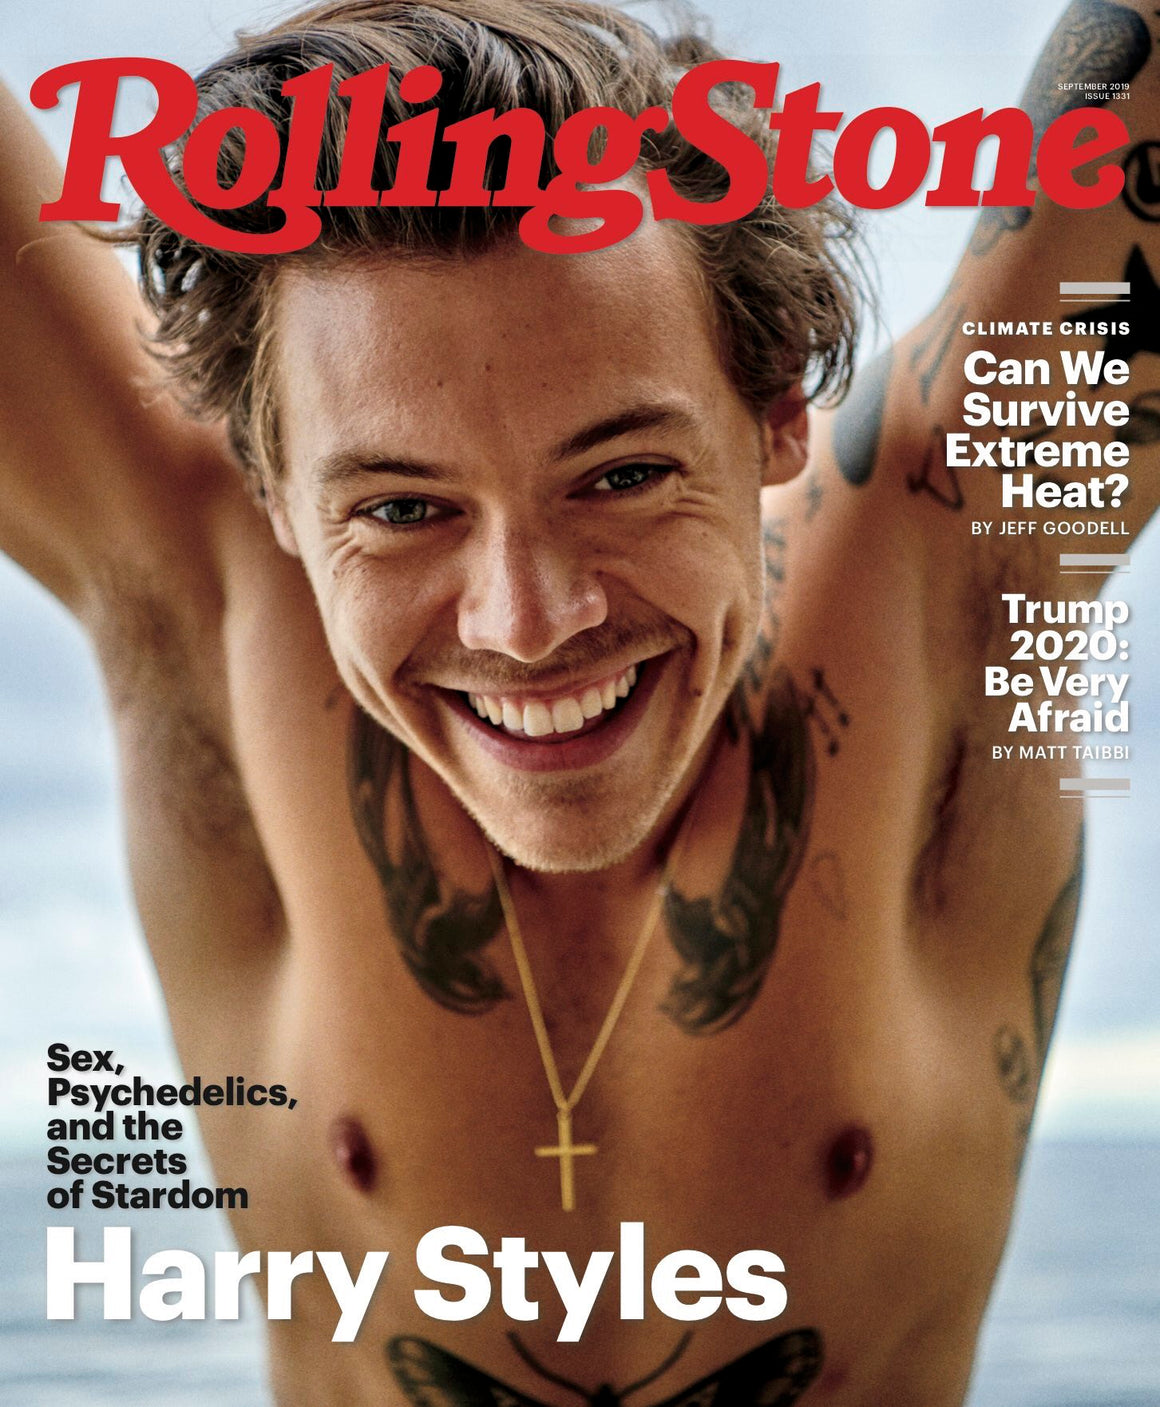 US ROLLING STONE MAGAZINE SEPTEMBER 2019: HARRY STYLES COVER EDITION